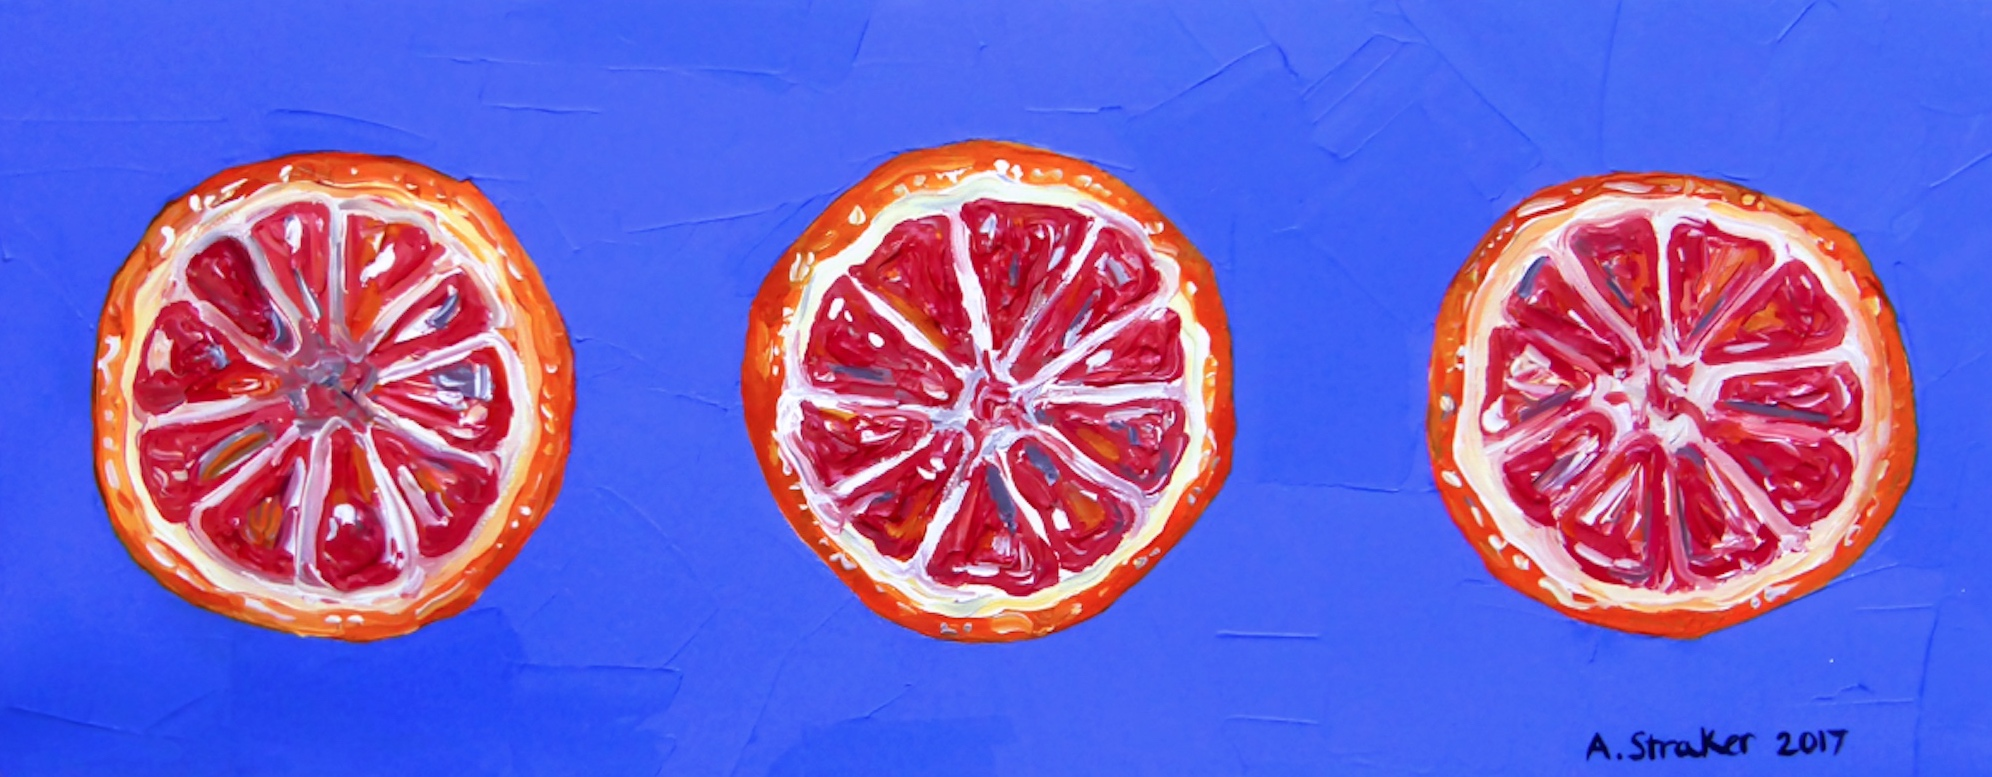 Blood Oranges Alice Straker.jpg